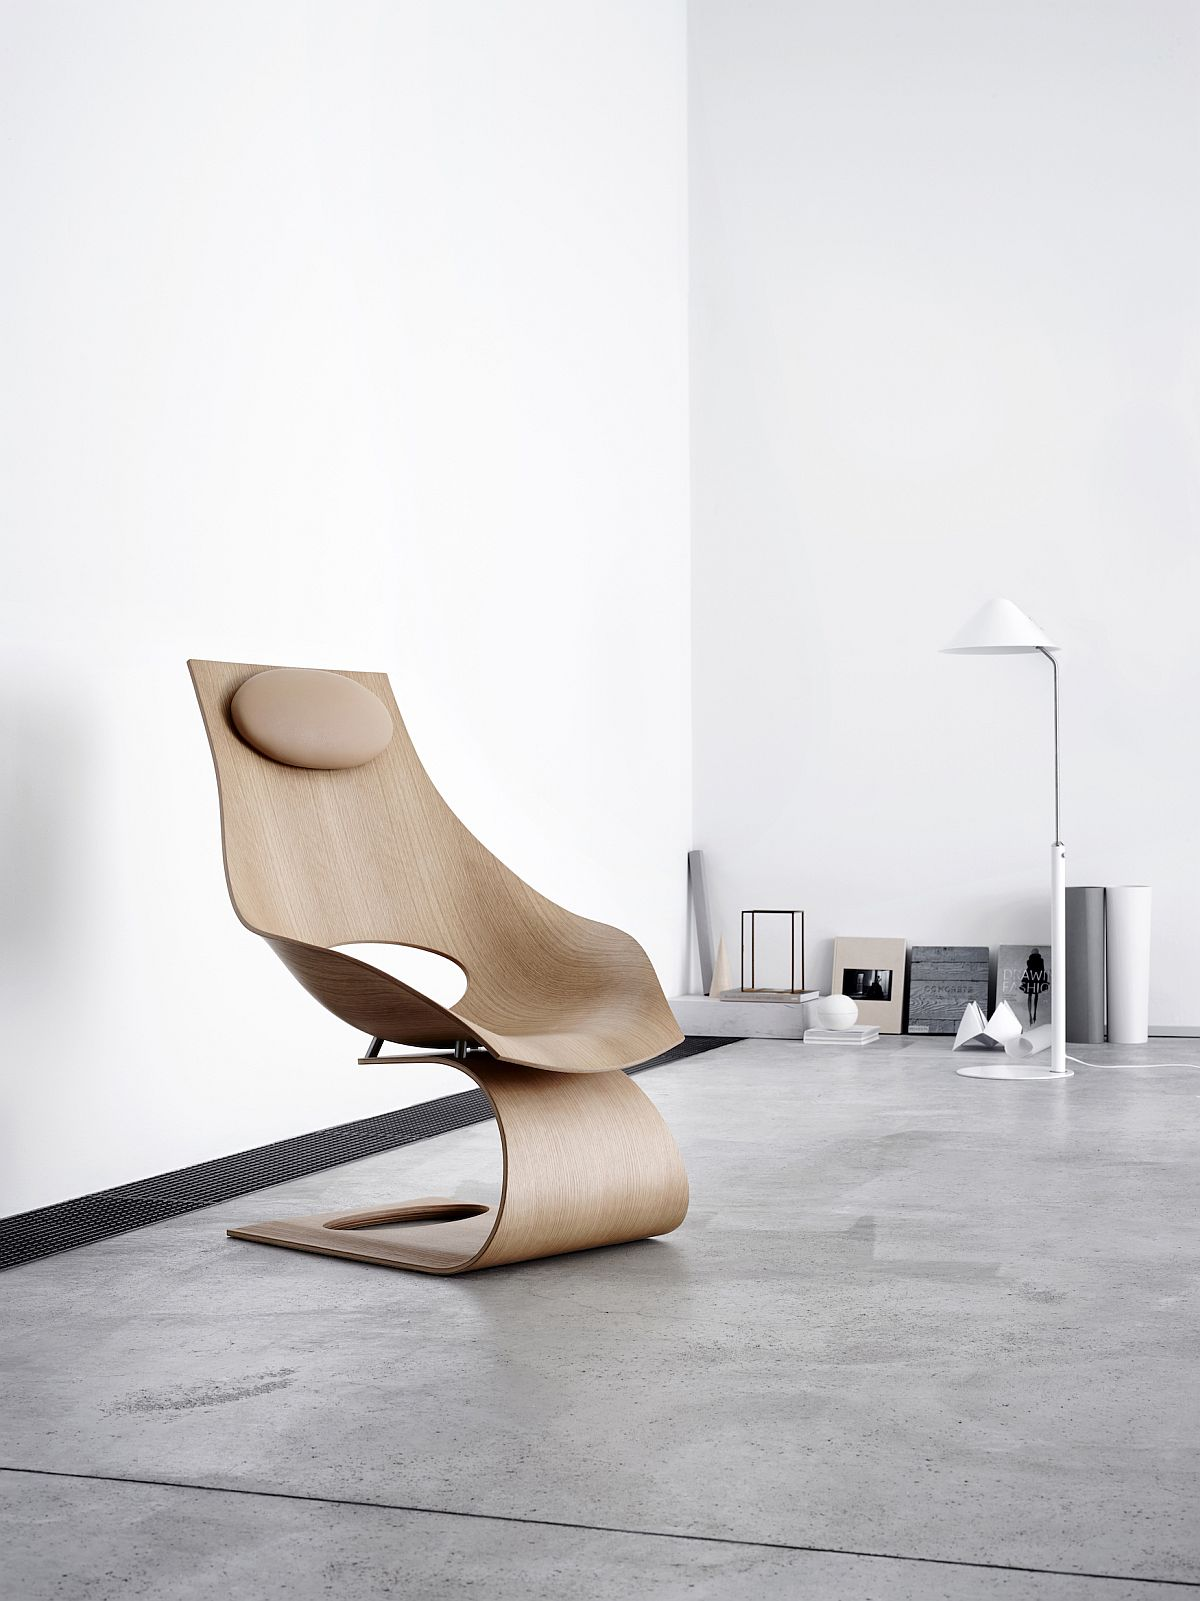 Dream Chair designed by Tadao Ando as a tribute to Hans J. Wegner